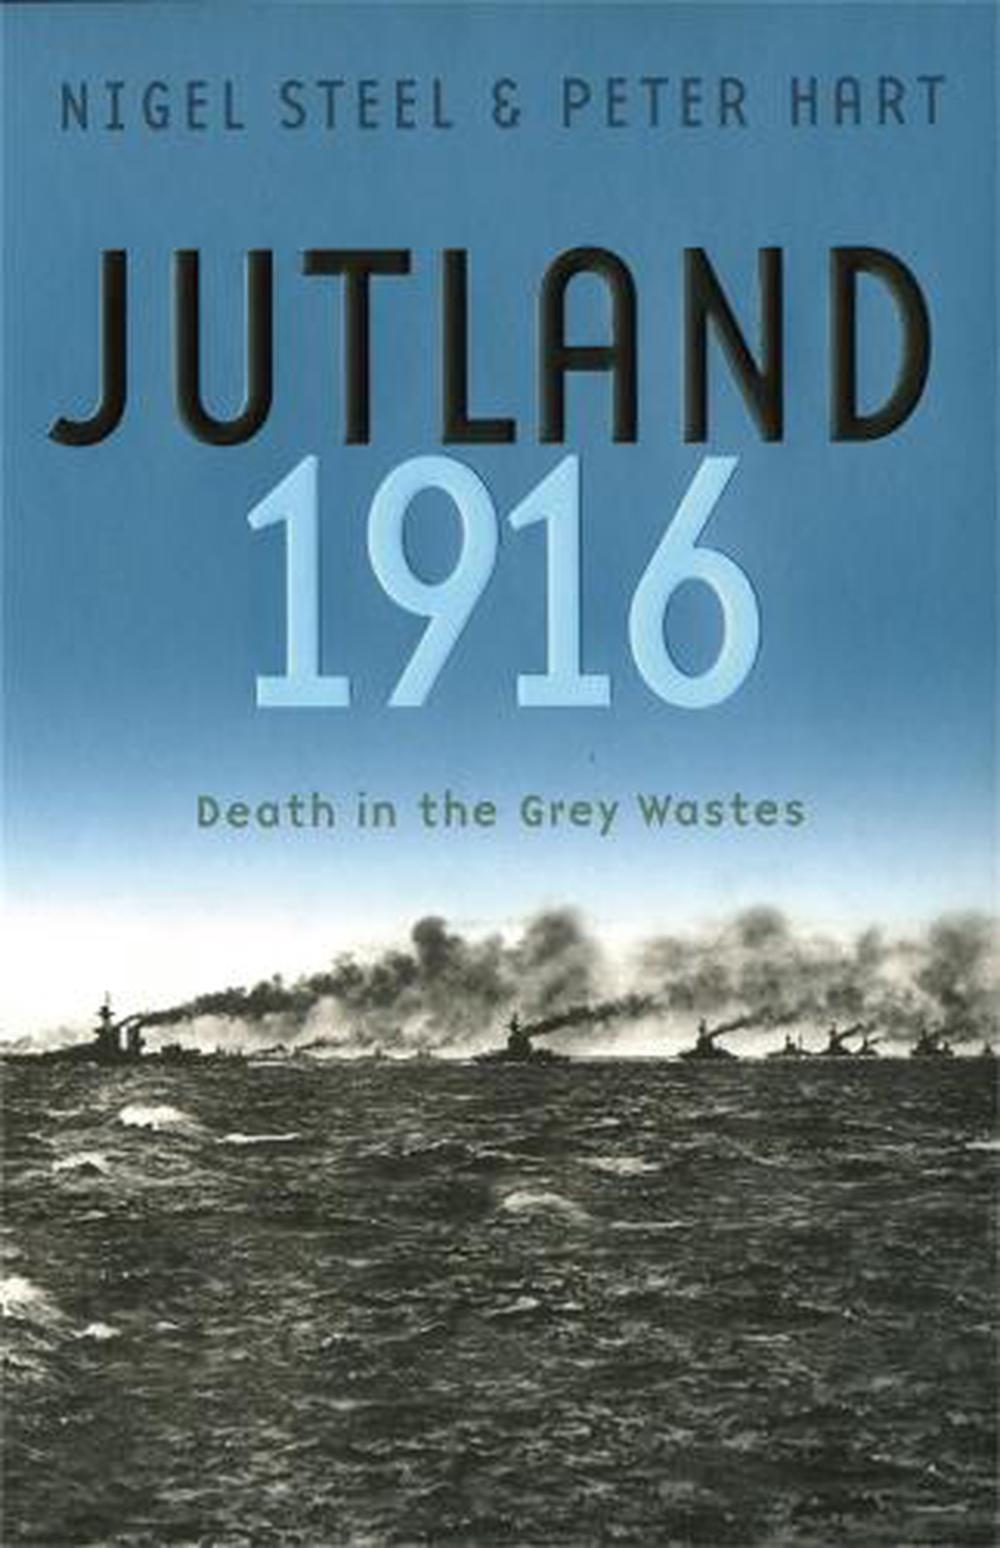 Jutland 1916  Death In The Grey Wastes By Nigel Steel